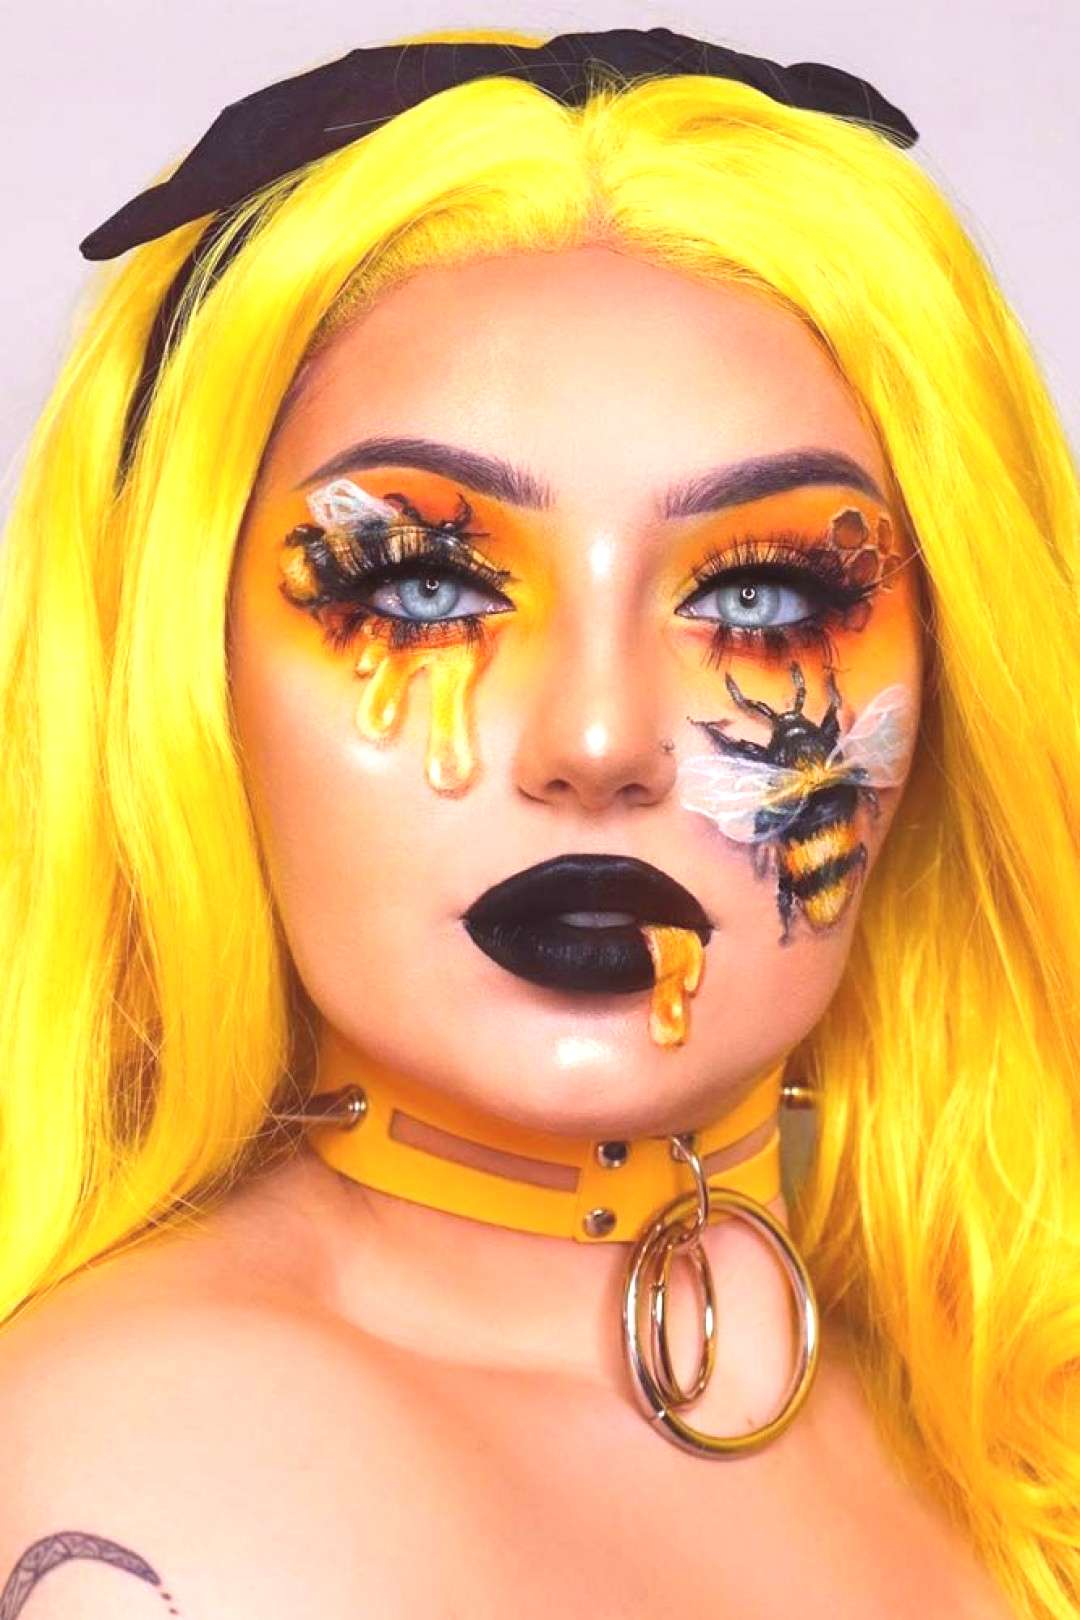 Queen Bee Fantasy Makeup ★ For beautiful and unique fantasy makeup ideas, browse our gallery. We